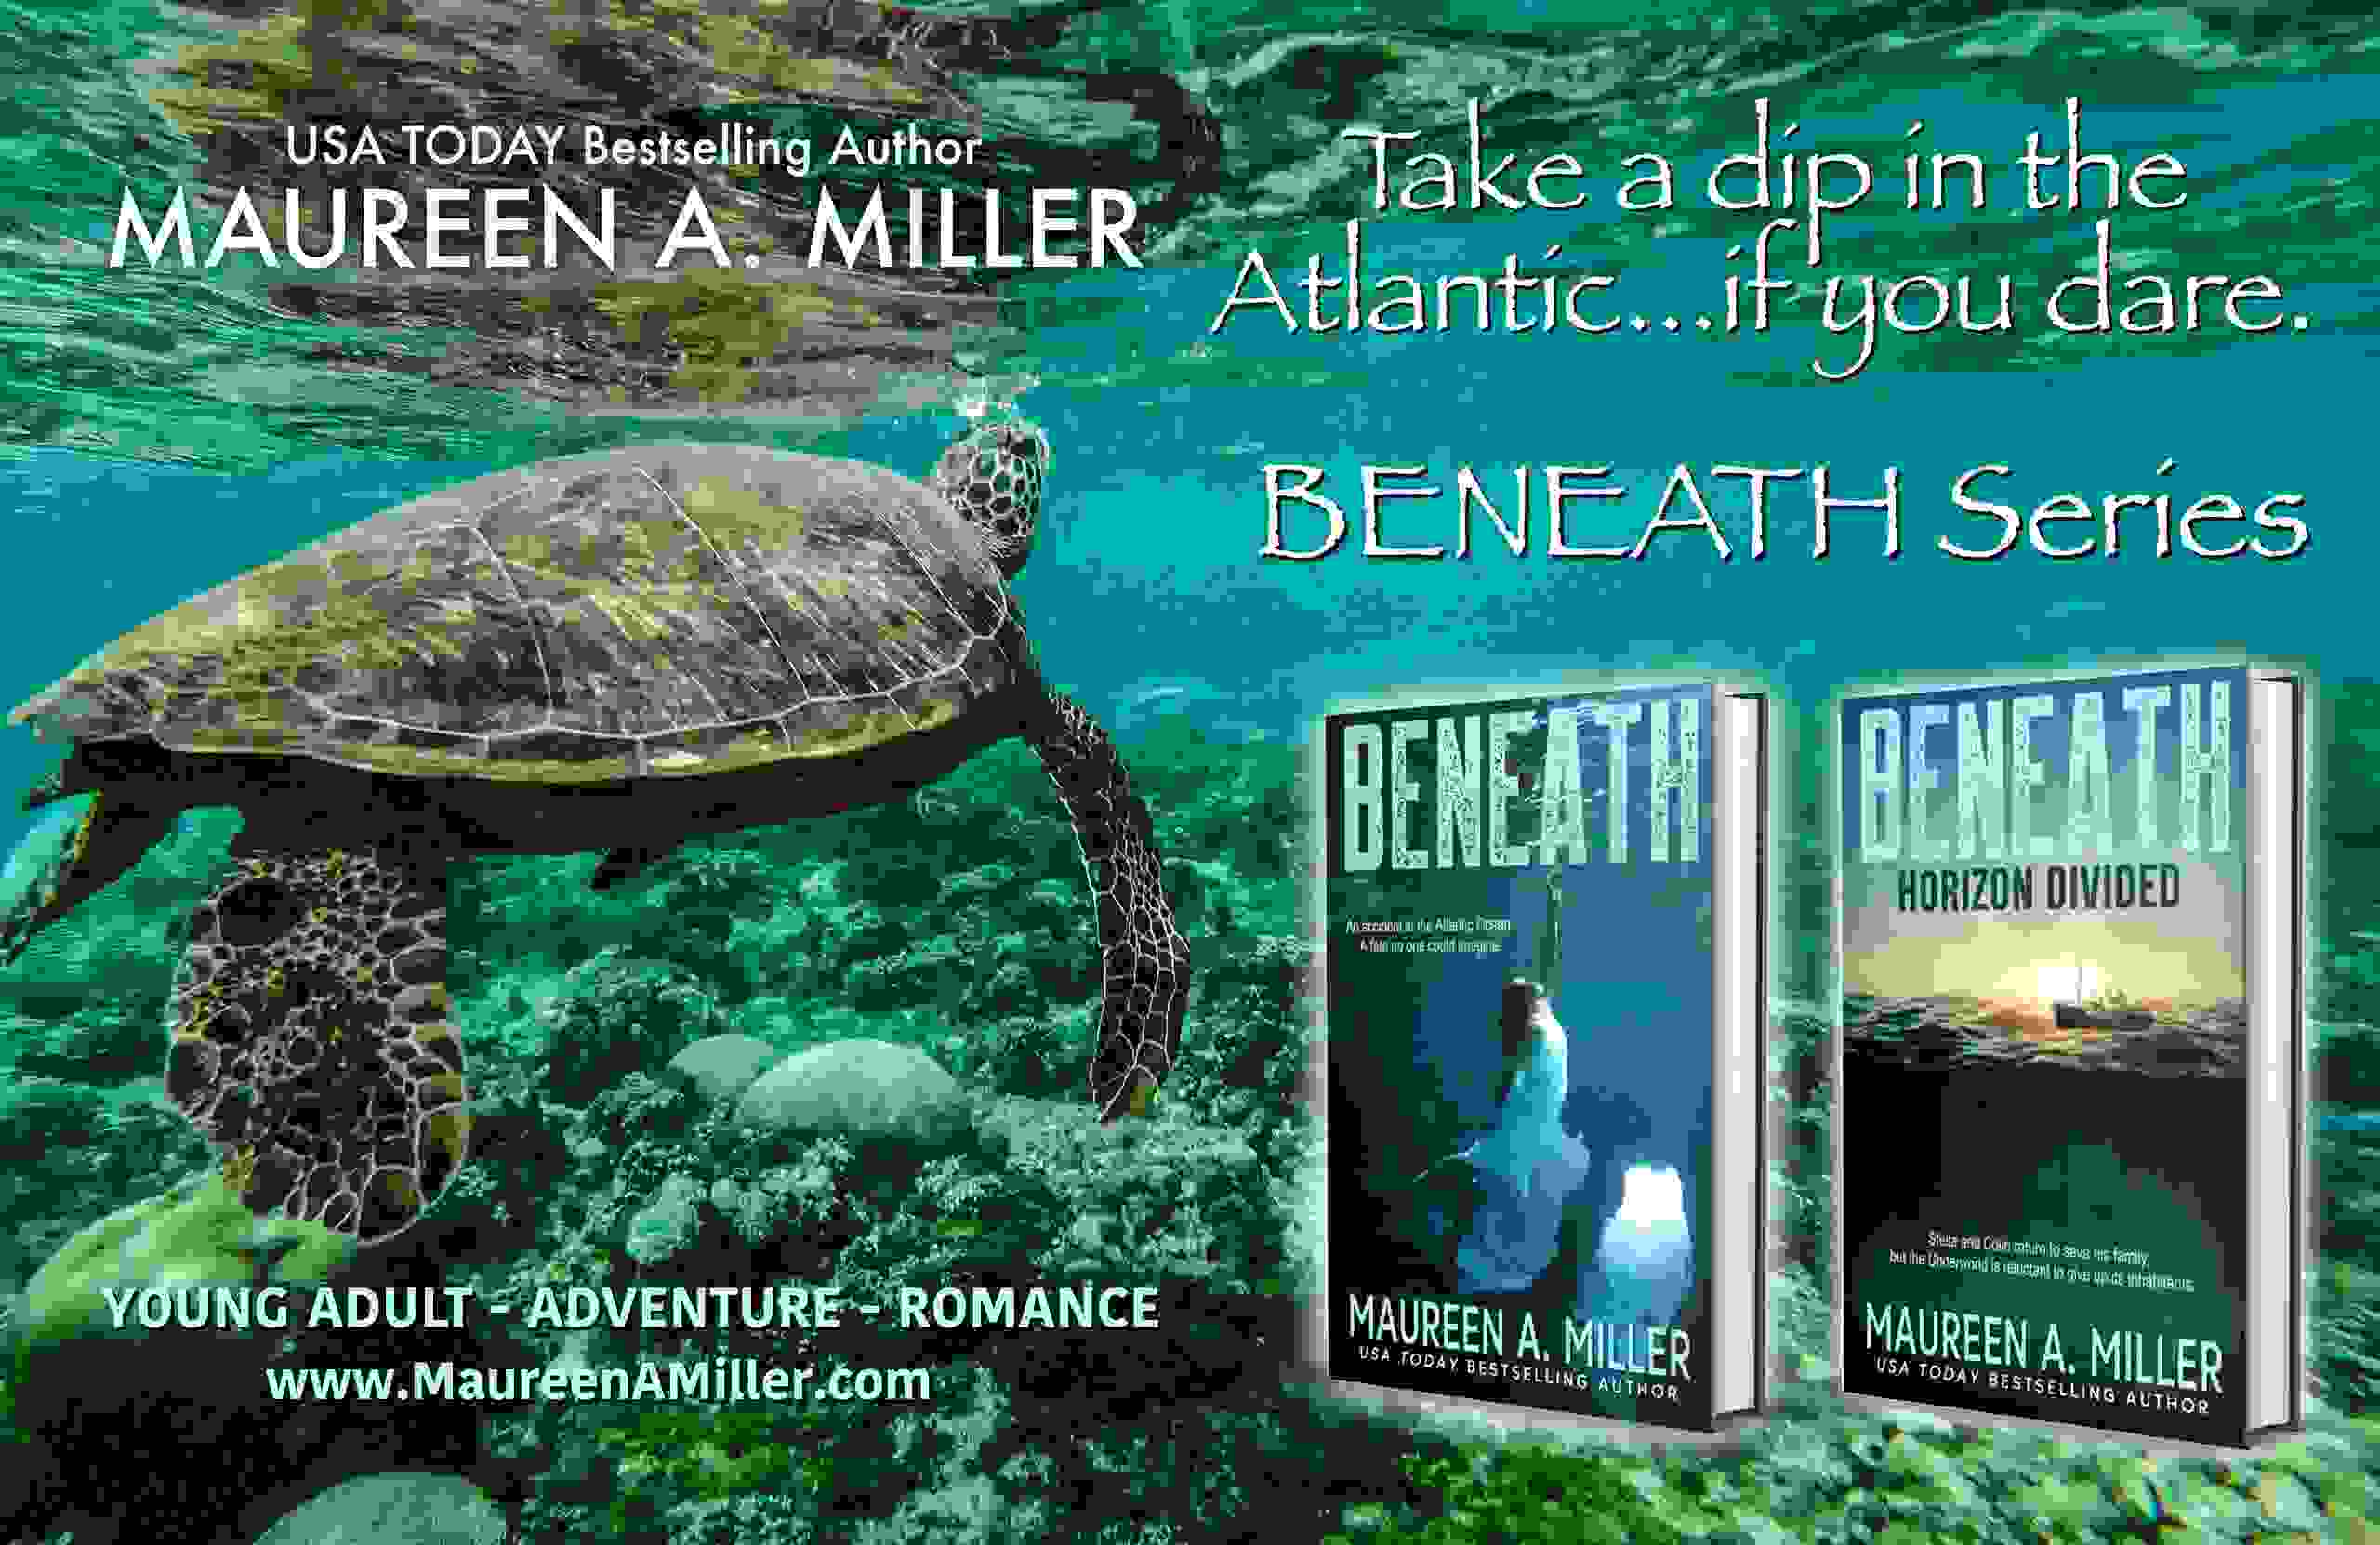 BENEATH series book covers from Maureen A. Miller. Sea turtle in the ocean.